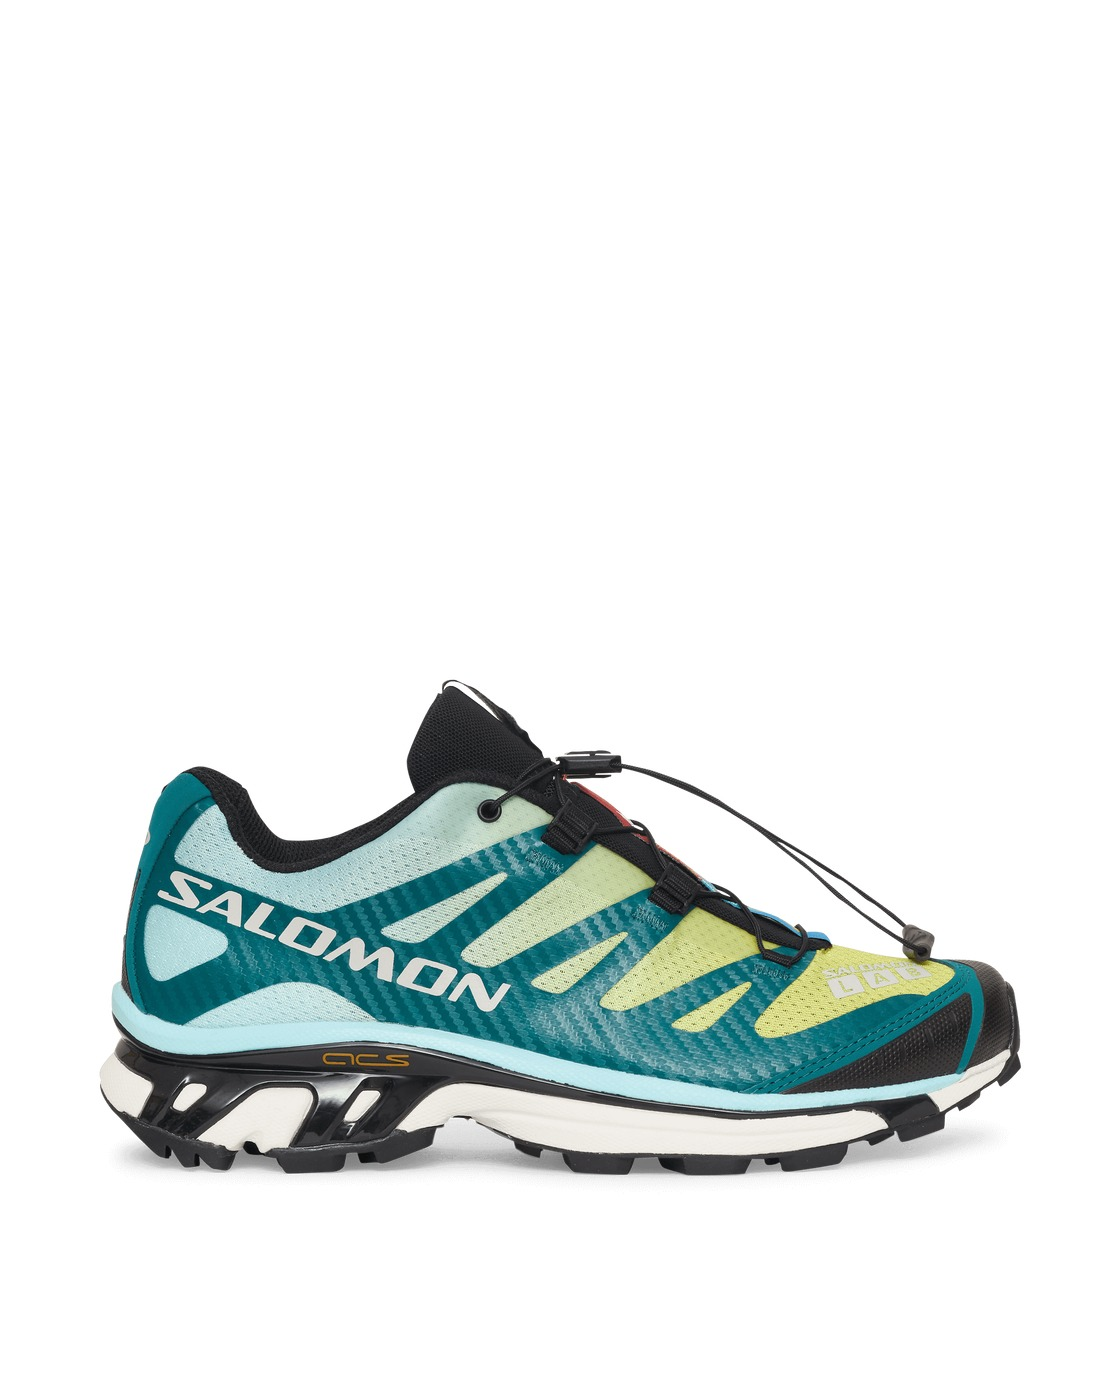 Photo: Salomon Xt 4 Advanced Sneakers Tanager Turquoise/Pacific